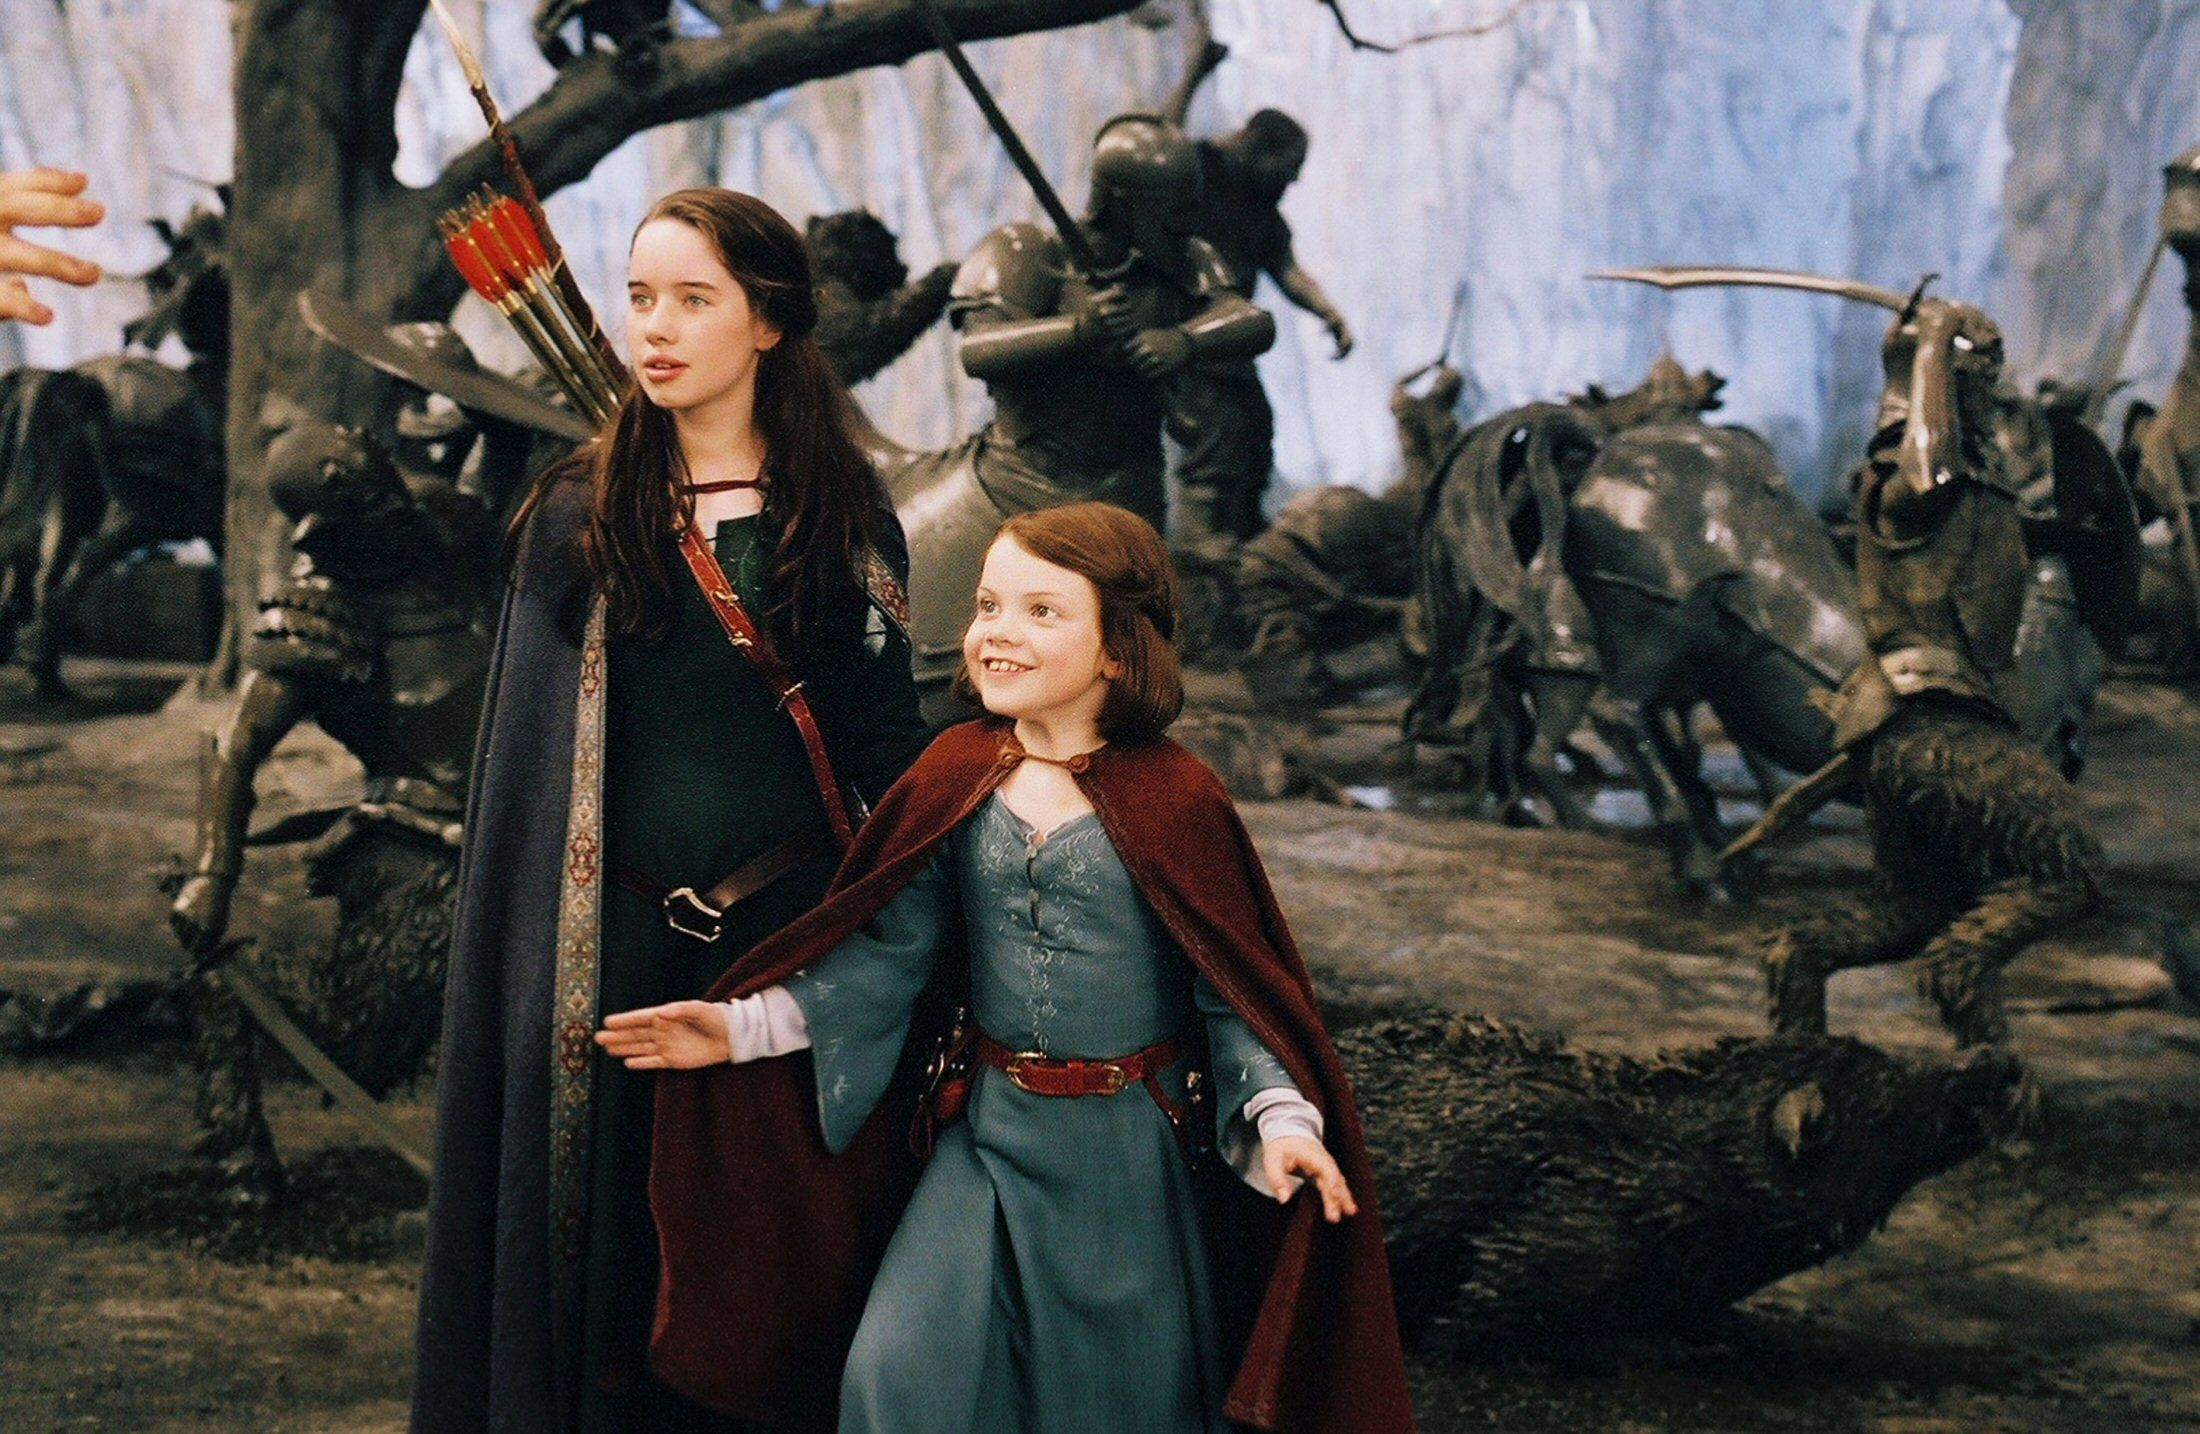 Susan and Lucy [NARNIA] | Empowered women in fantasy and